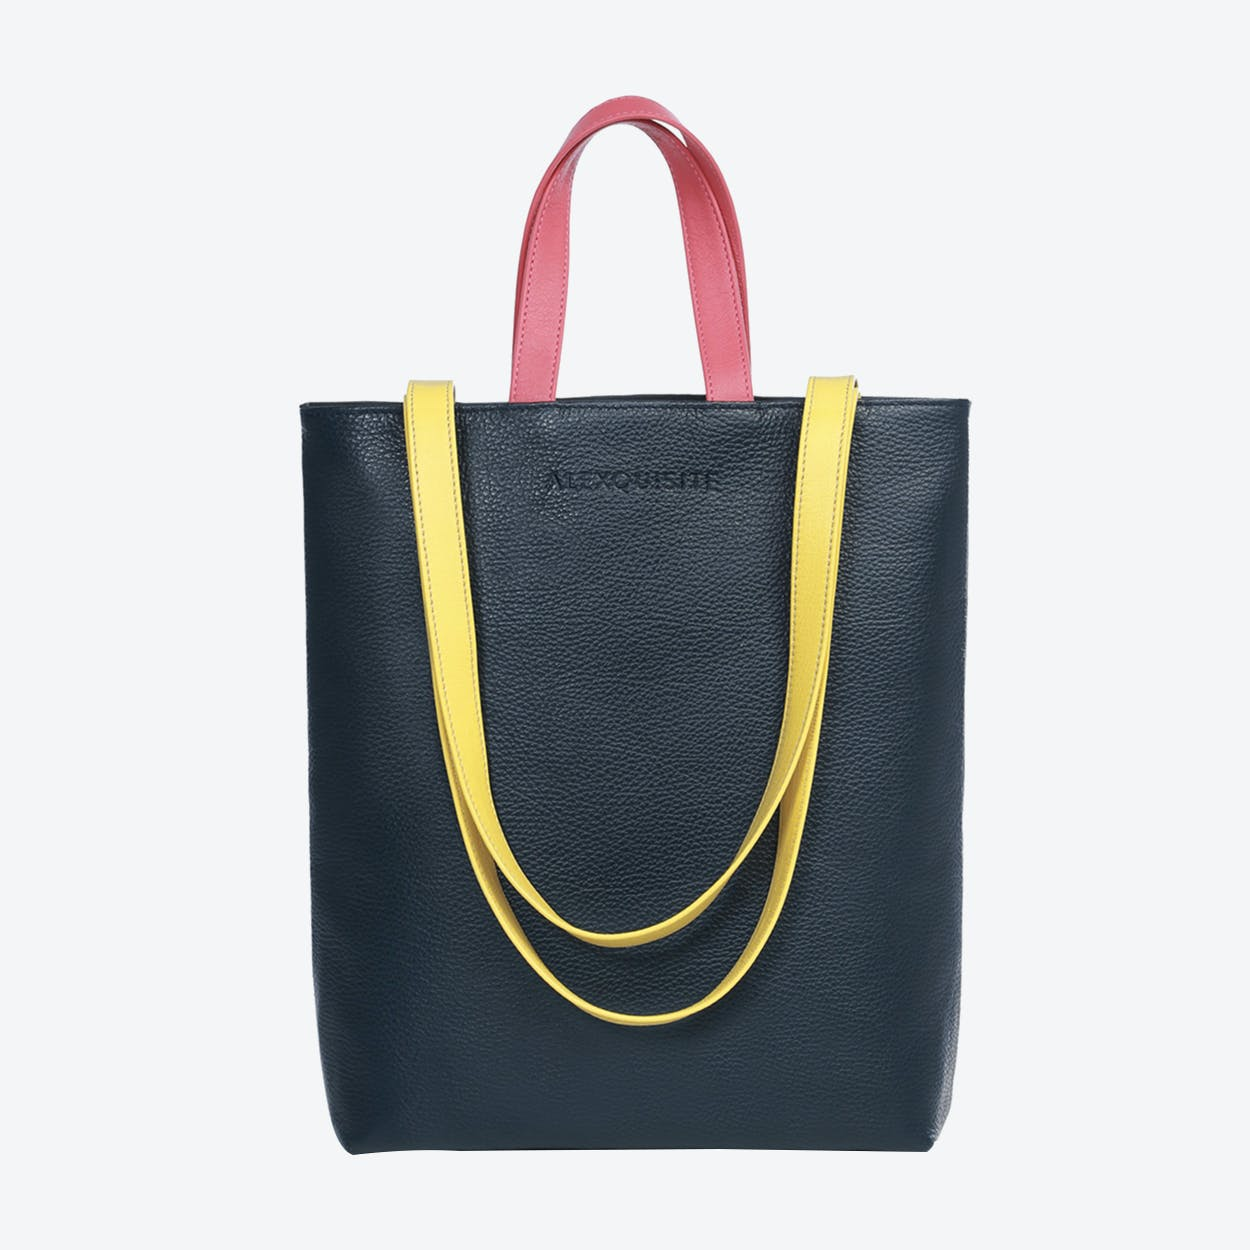 _ONE Tote Bag in Coral